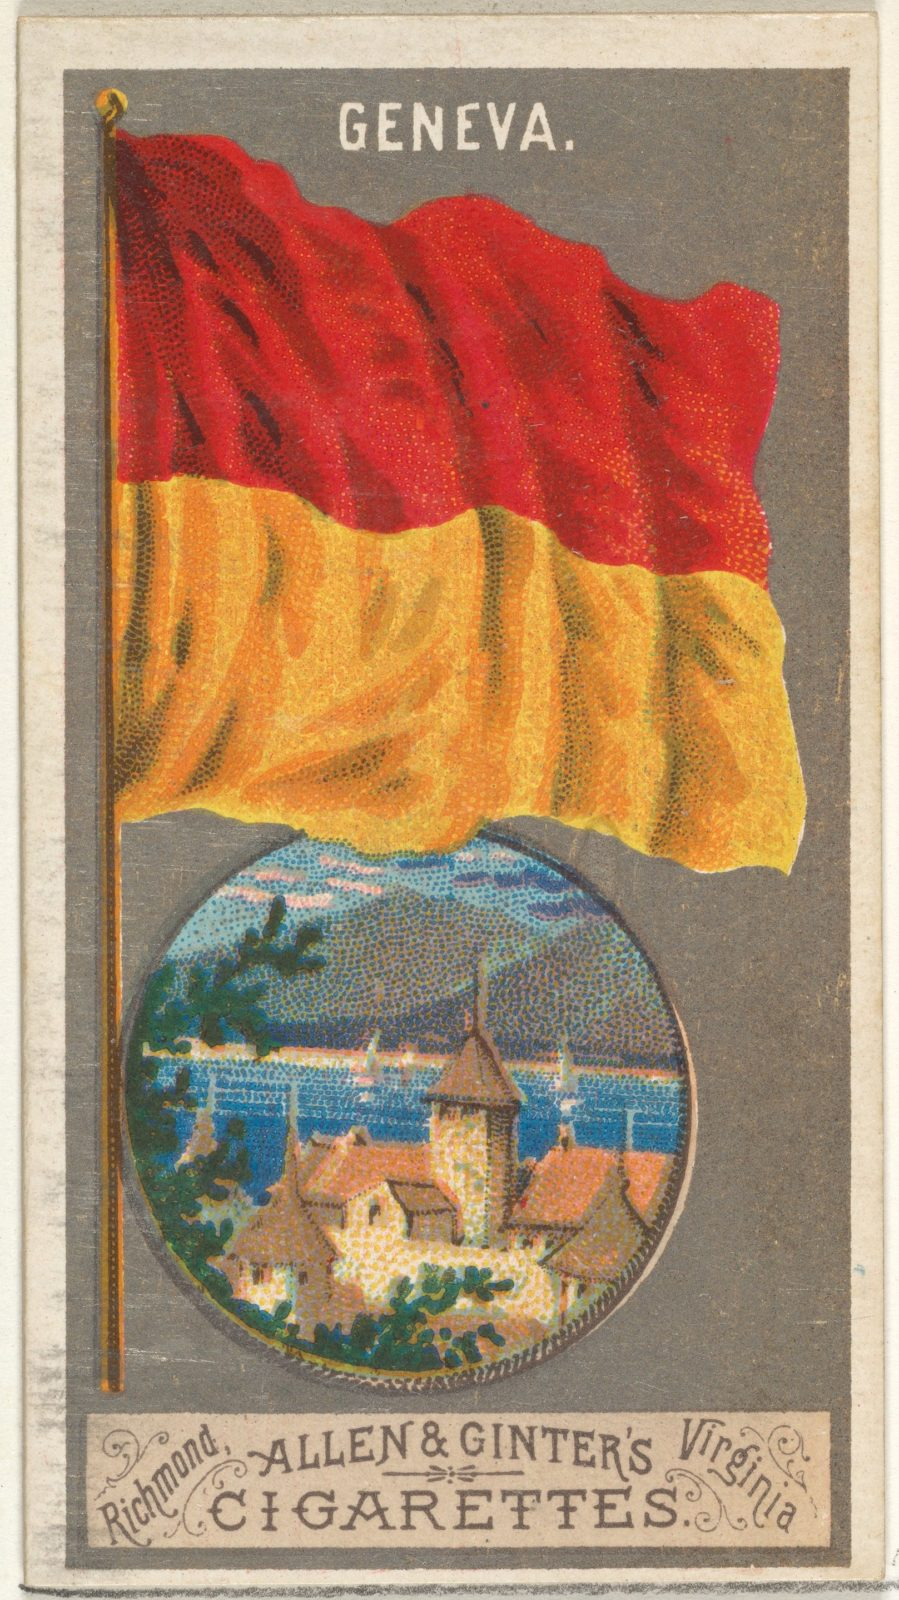 Geneva, from the City Flags series (N6) for Allen & Ginter Cigarettes Brands